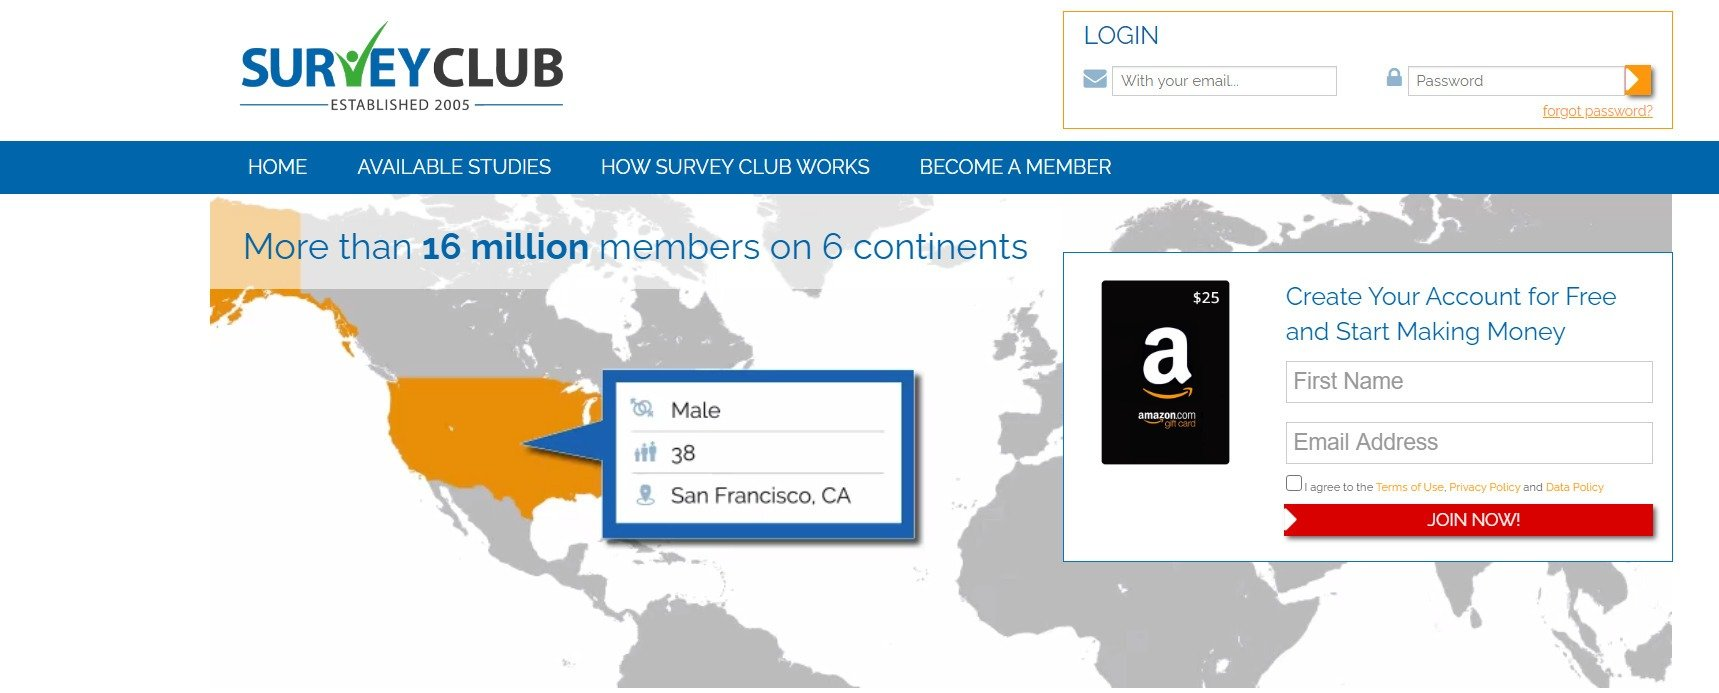 survey club homepage